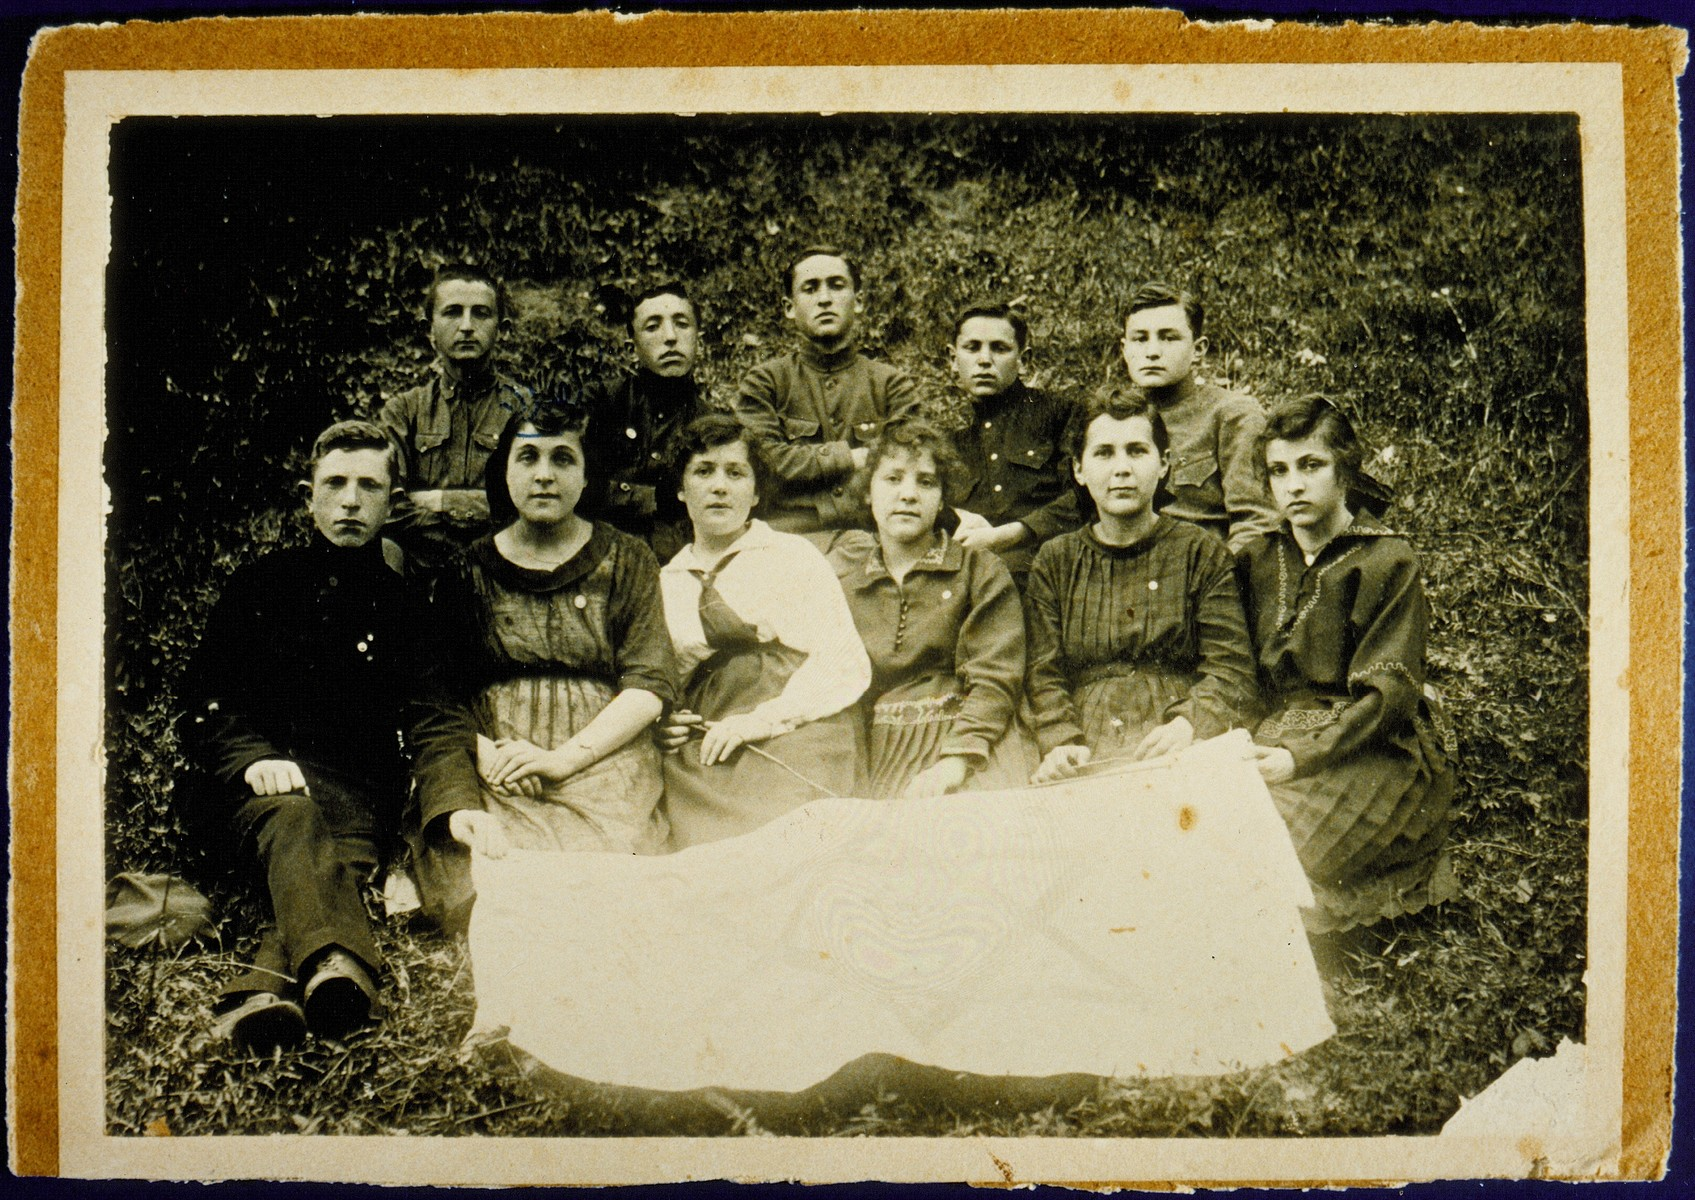 Members of the Zionist group Herut ve-Tehyia (Freedom and Revival) pose in front of the group's banner.     Front row from right to left: Itta-Malka Pachianko, Esther Dwilanski, Zipporah Nochomowicz, Hannah Koppelman, Zipporah Lubetski Tokatli and Shlomo Cofnas.  Top row from right to left: Peretz Kaleko, Shaul Schneider, Zeev Kaganowicz, Shlomo Kiuchefski and Shalom Sonenson.    Zipporah Lubetski Tokatli, Hannah Koppelman, Shaul Schneider and Peretz Kaleko immigrated to Palestine. Zipporah Nochomowicz immigrated to South America.  Shalom Sonenson  survived the Holocaust in hiding.  Itta-Malka Pachiano was murdered during the Holocaust.  Shlomo Kiuchefski was murdered by members of the Polish Home Army.